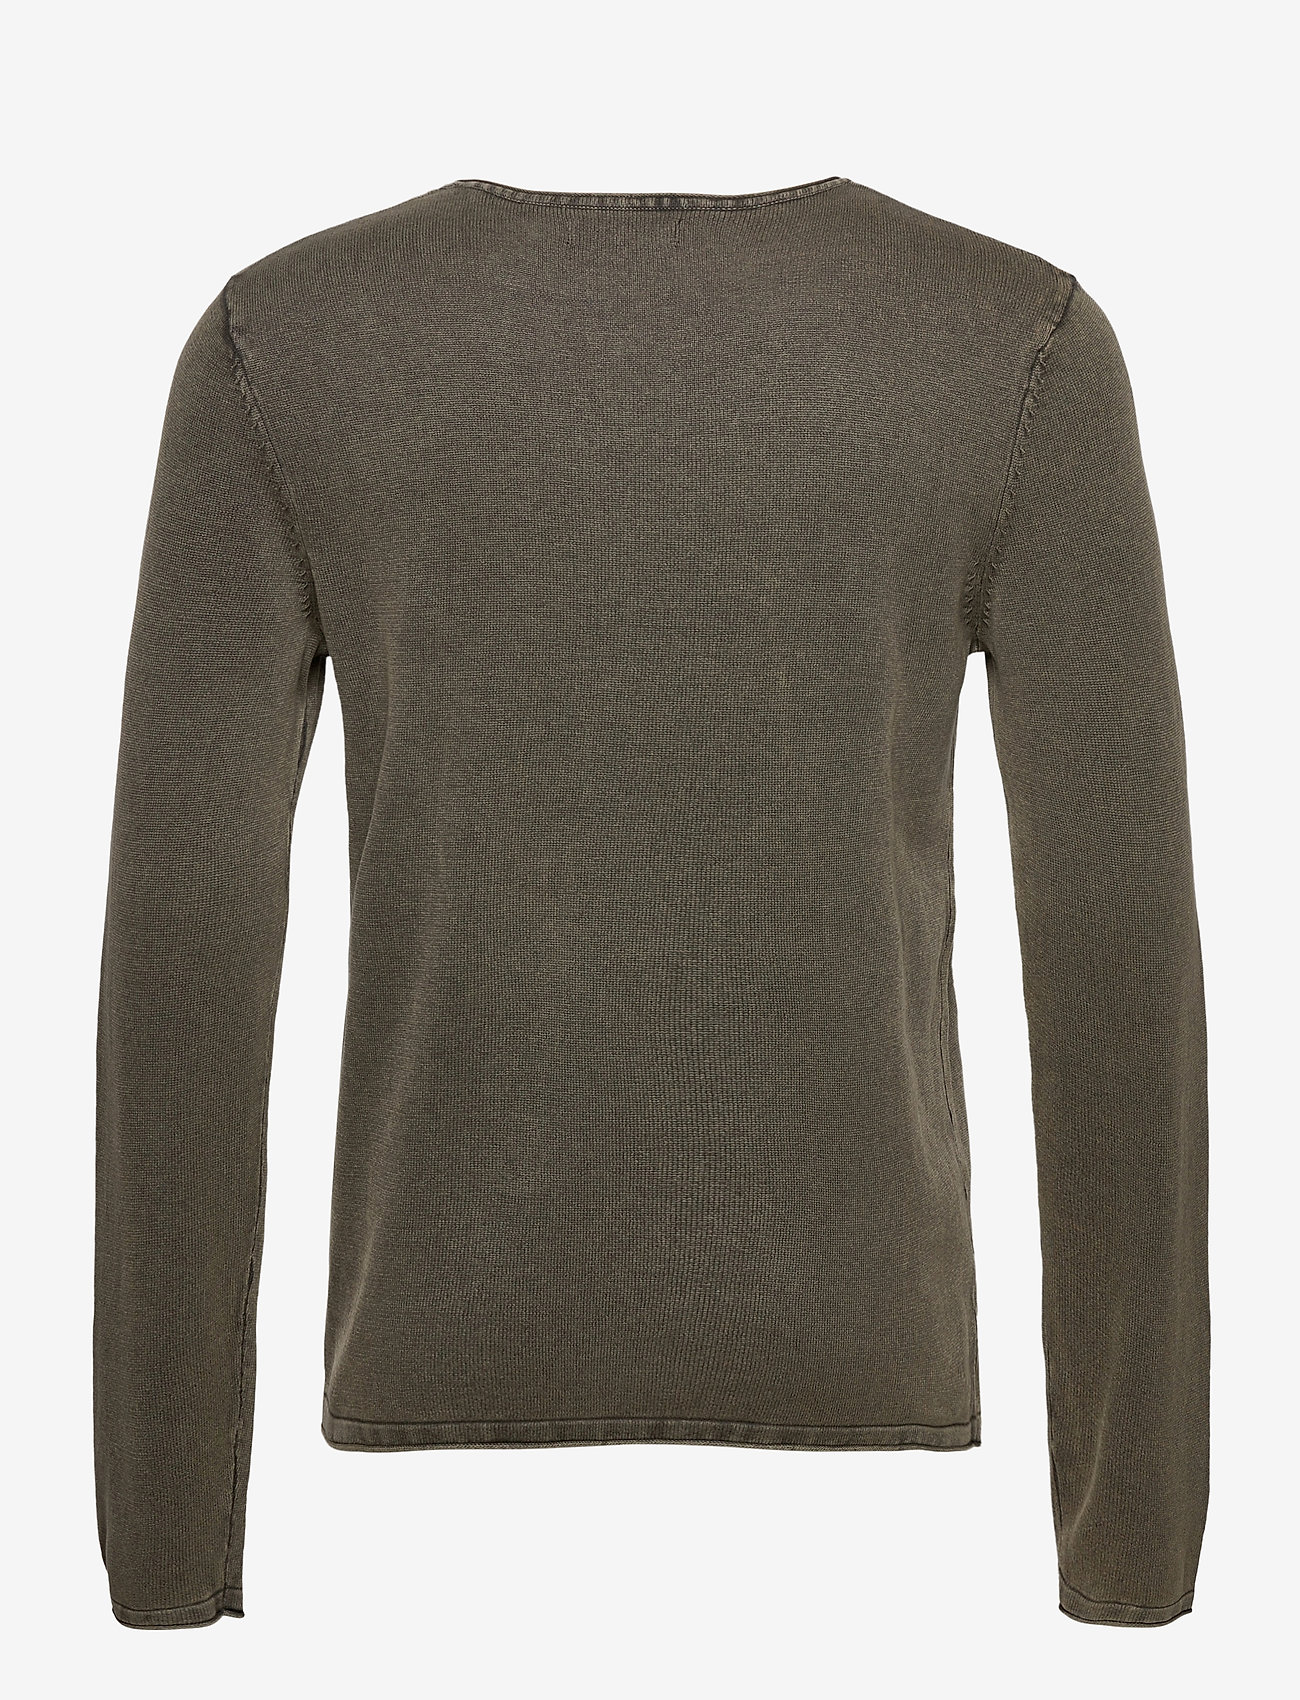 Jack & Jones - JJELEO KNIT CREW NECK NOOS - tricots basiques - dusty olive - 1